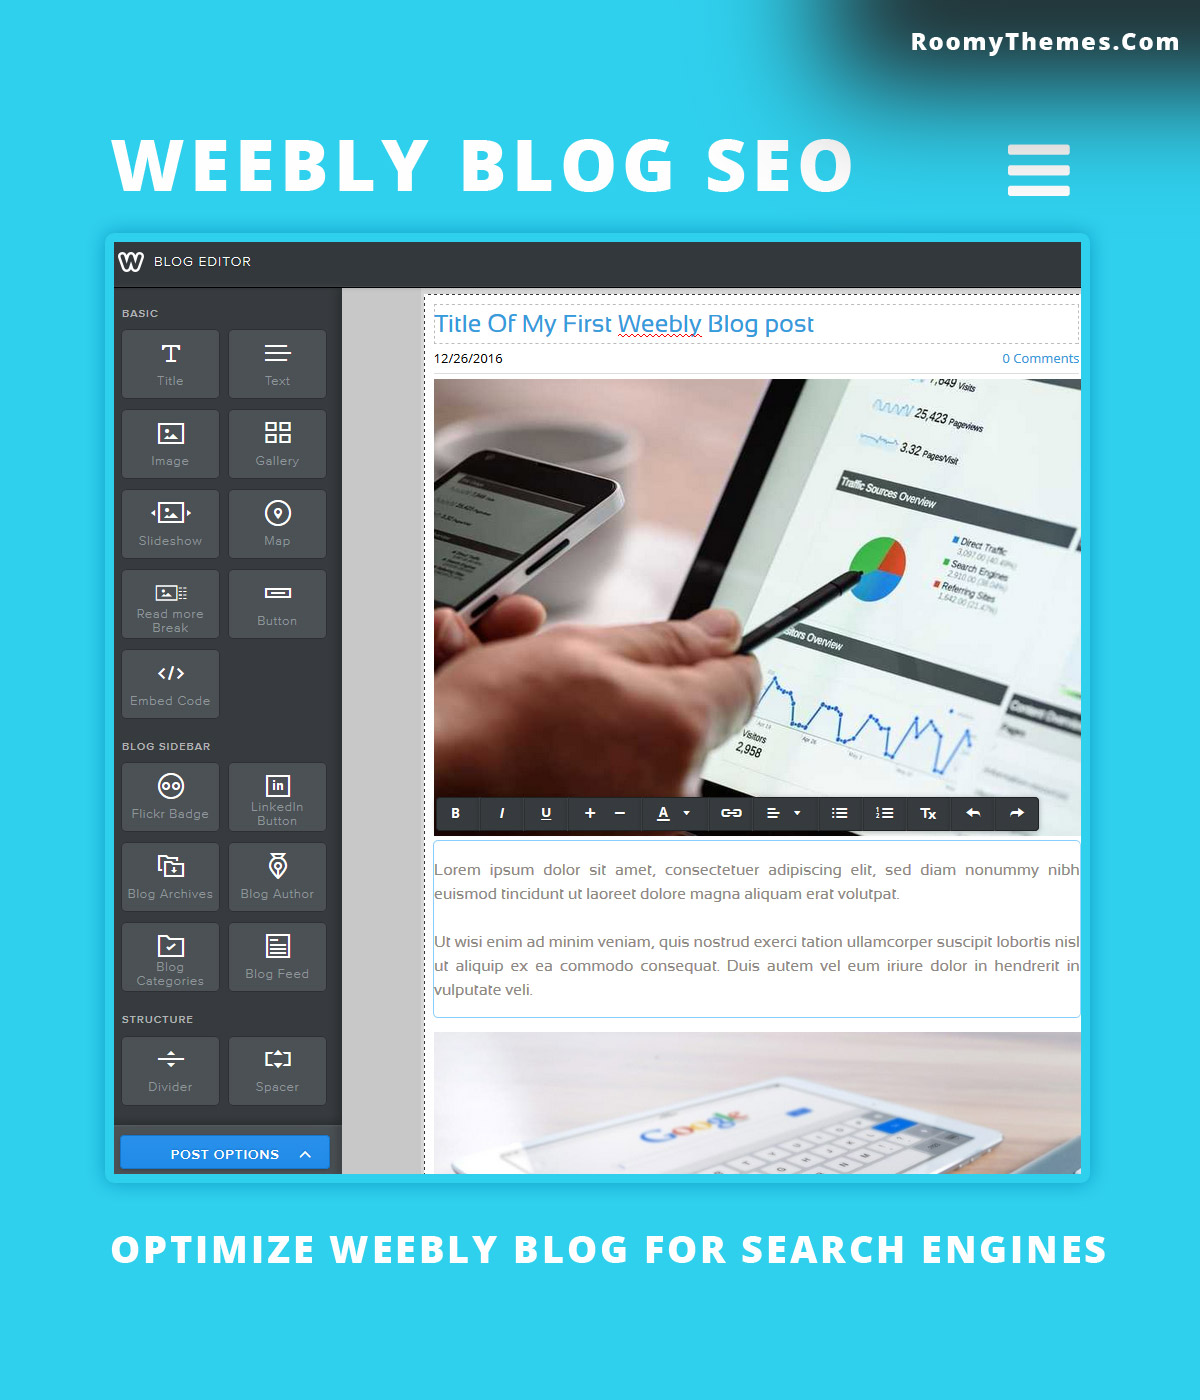 Weebly SEO - Weebly Pages And Blog Post For Search Engines - Roomy